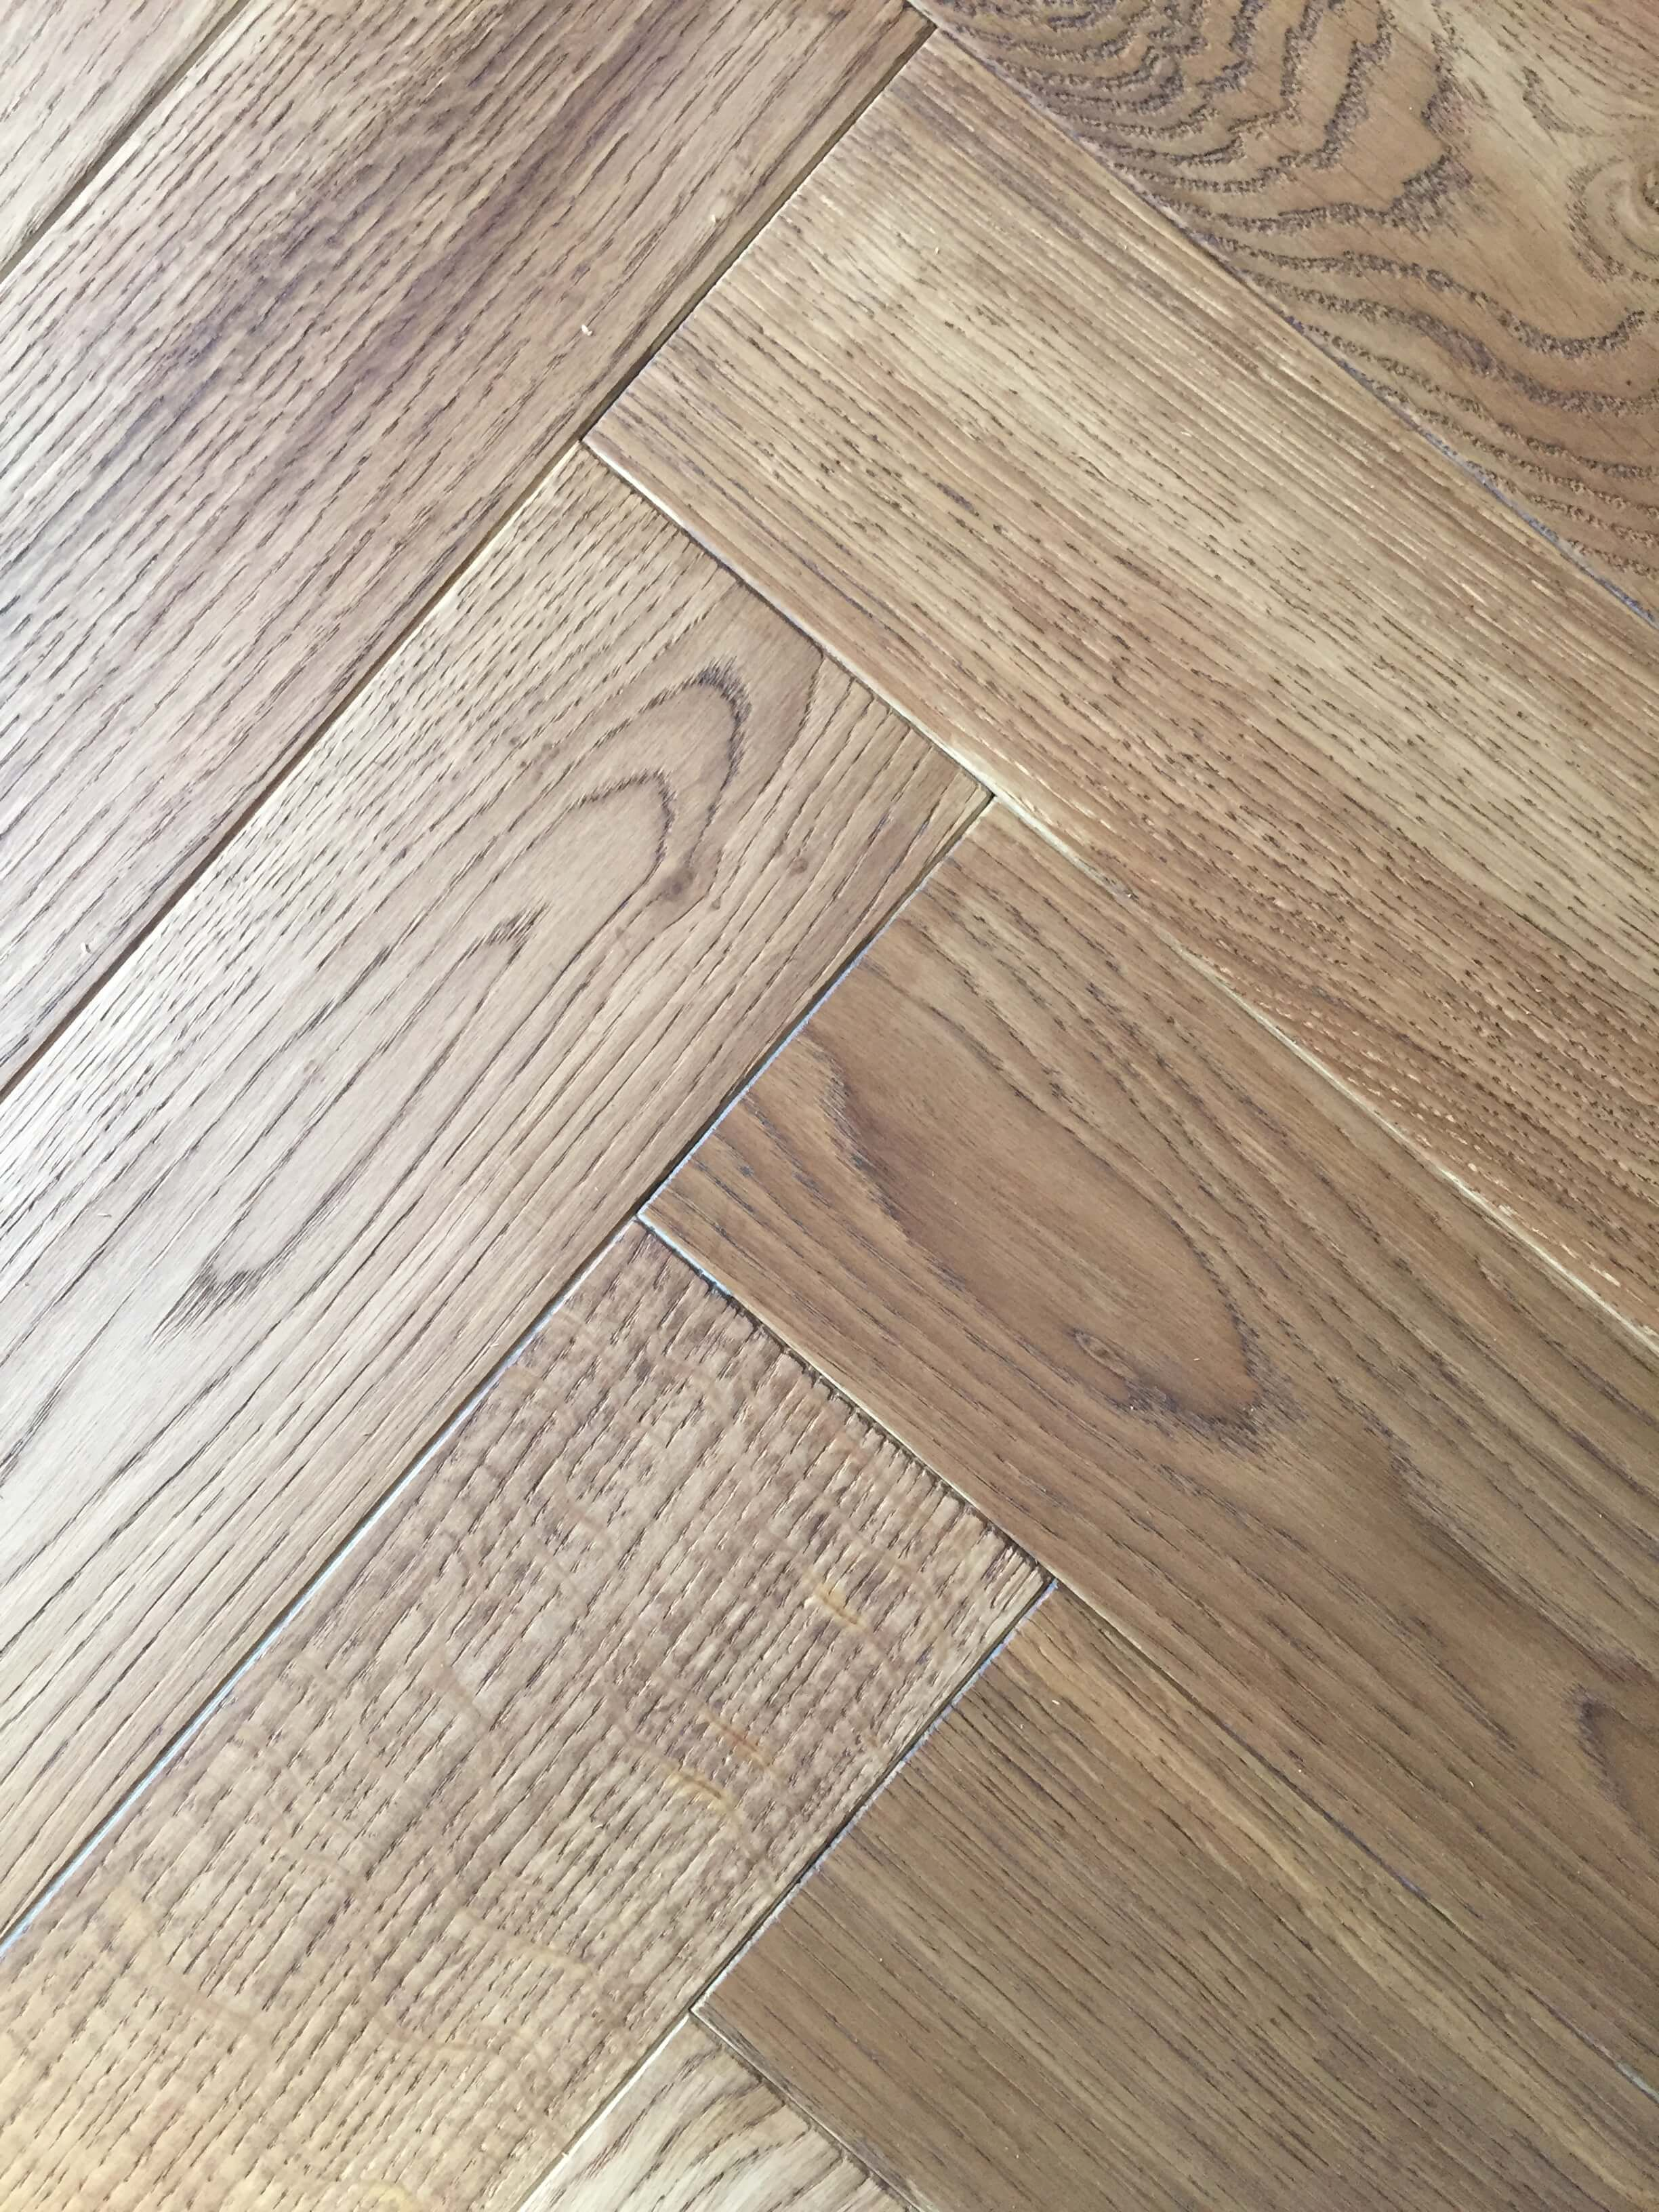 Herringbone Parquet Wood Floors In Edinburgh Glasgow And London Engineered Wood Floors Wood Laminate Flooring Flooring Sale